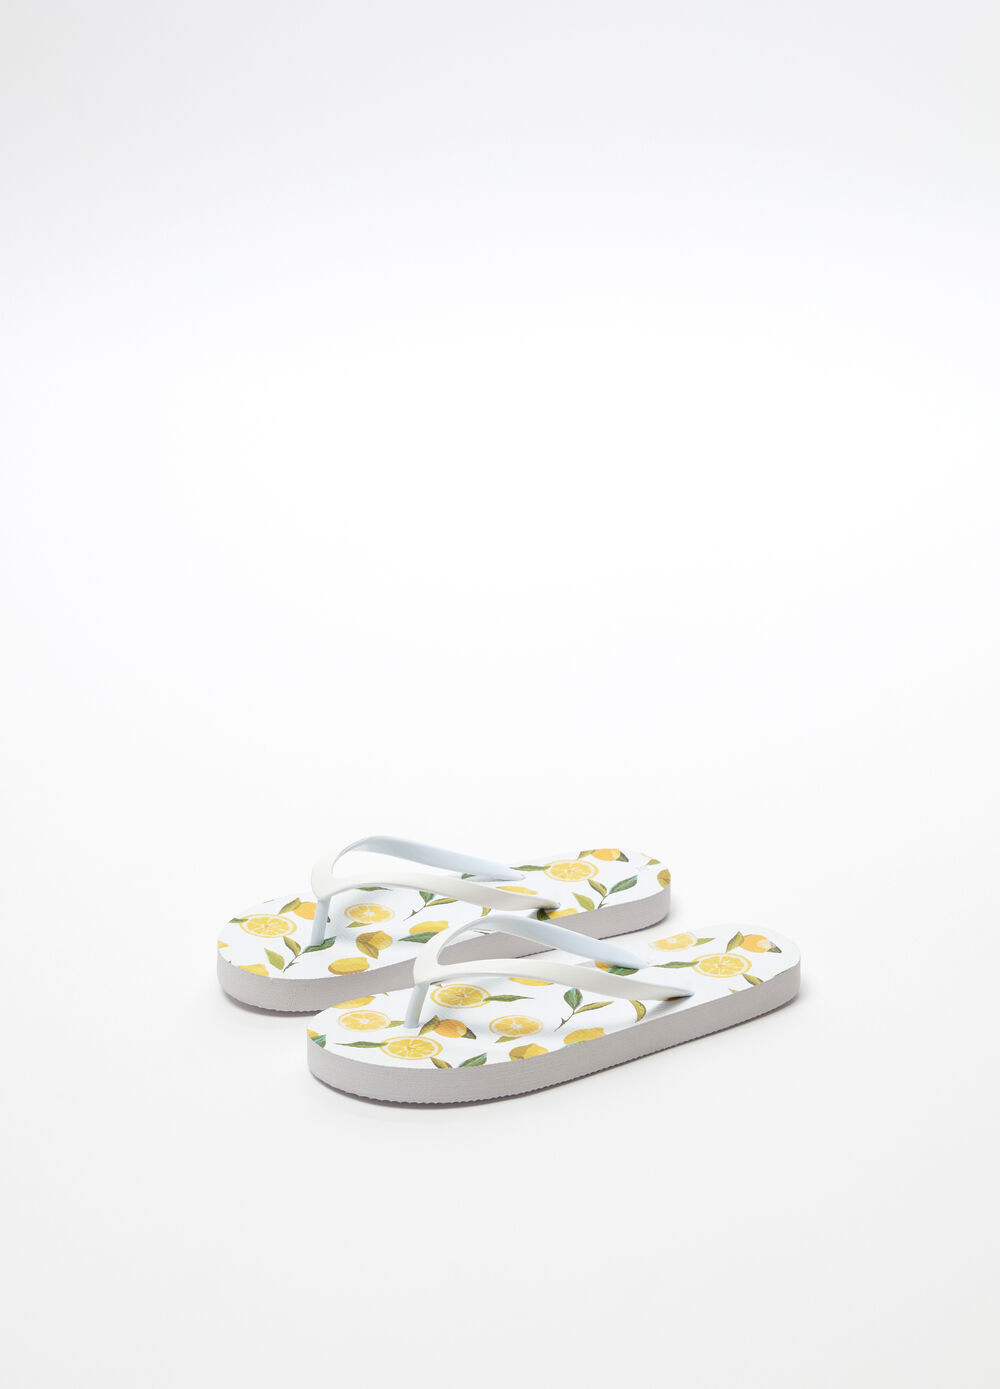 Thong sandals with lemon patterned sole